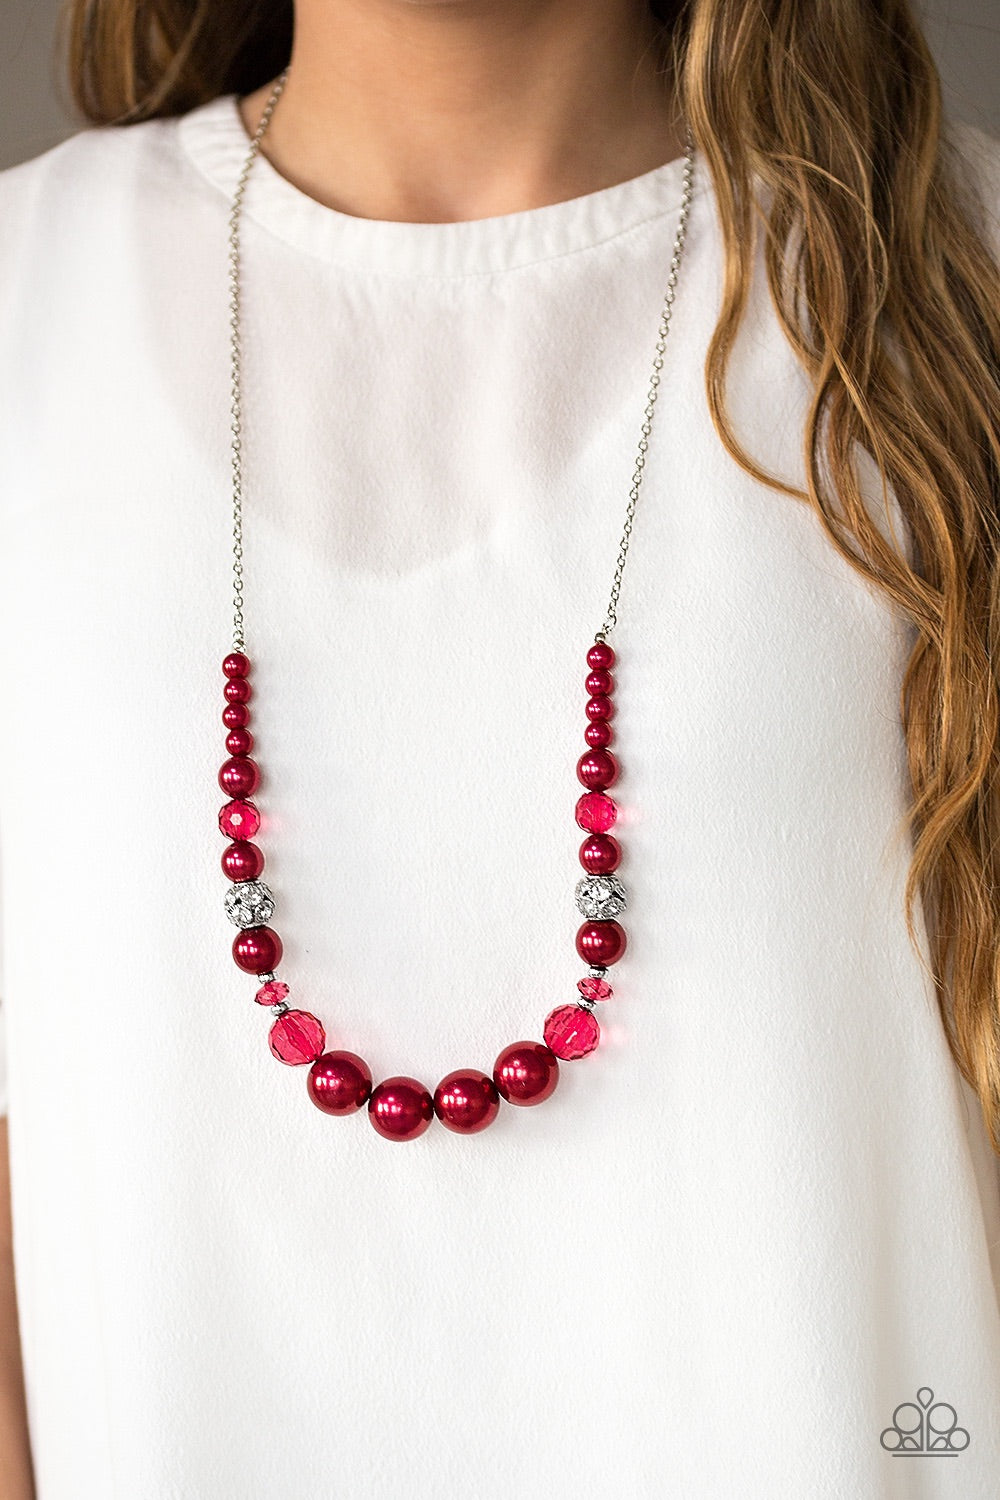 Paparazzi Jewelry Necklace The Wedding Party - Red